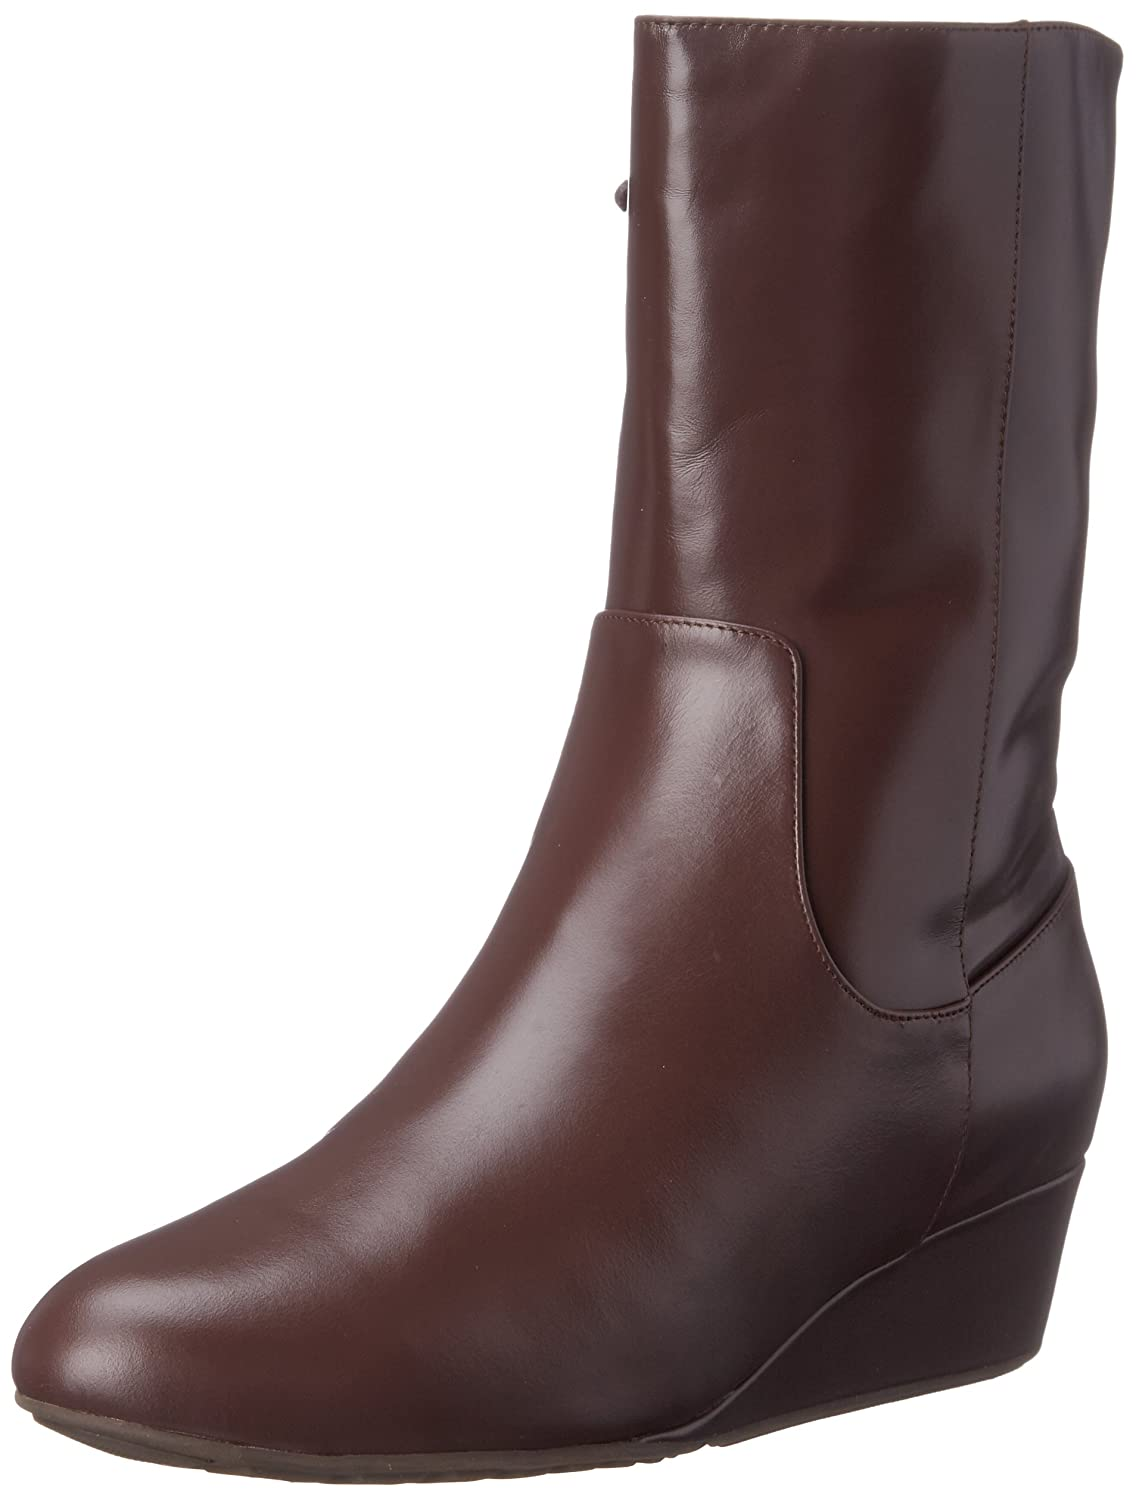 Cole Haan Women's Tali Grand Shbt 40WP Boot B00WUPJ54K 10 B(M) US|Chestnut Wp